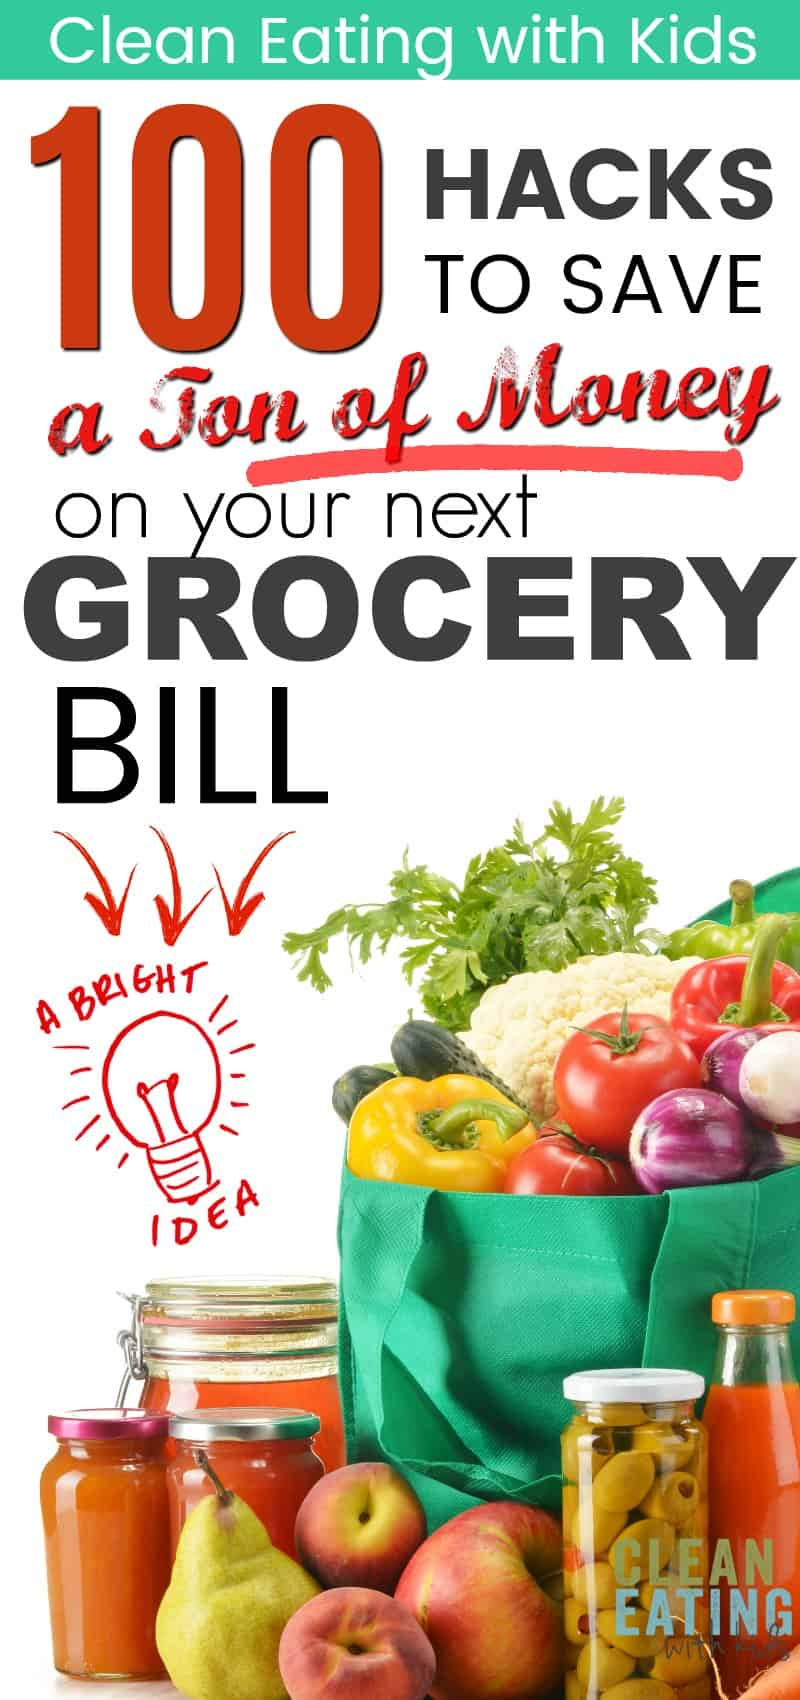 Awesome list of grocery shopping hacks and ideas to do food shopping on a budget. Loved that it wasn't only about cutting coupons and had advice for healthy food for the entire family. This is the ultimate list of tips on how to save money on food and groceries. #savemoney #budgeting #saveonfood